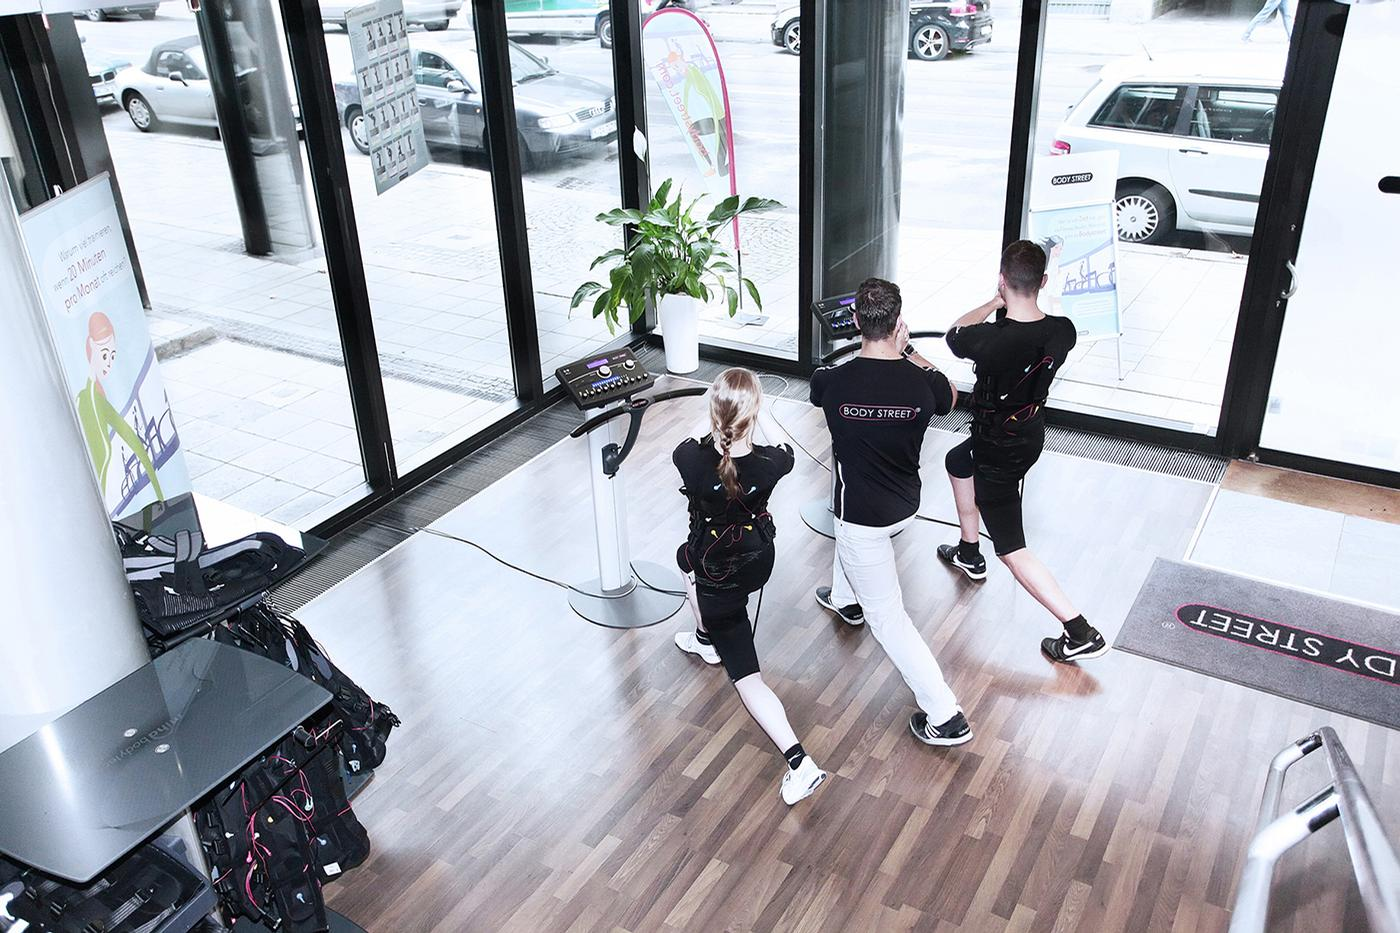 Bodystreet now operates nearly 300 studios across Europe, offering a combination of EMS and personal training